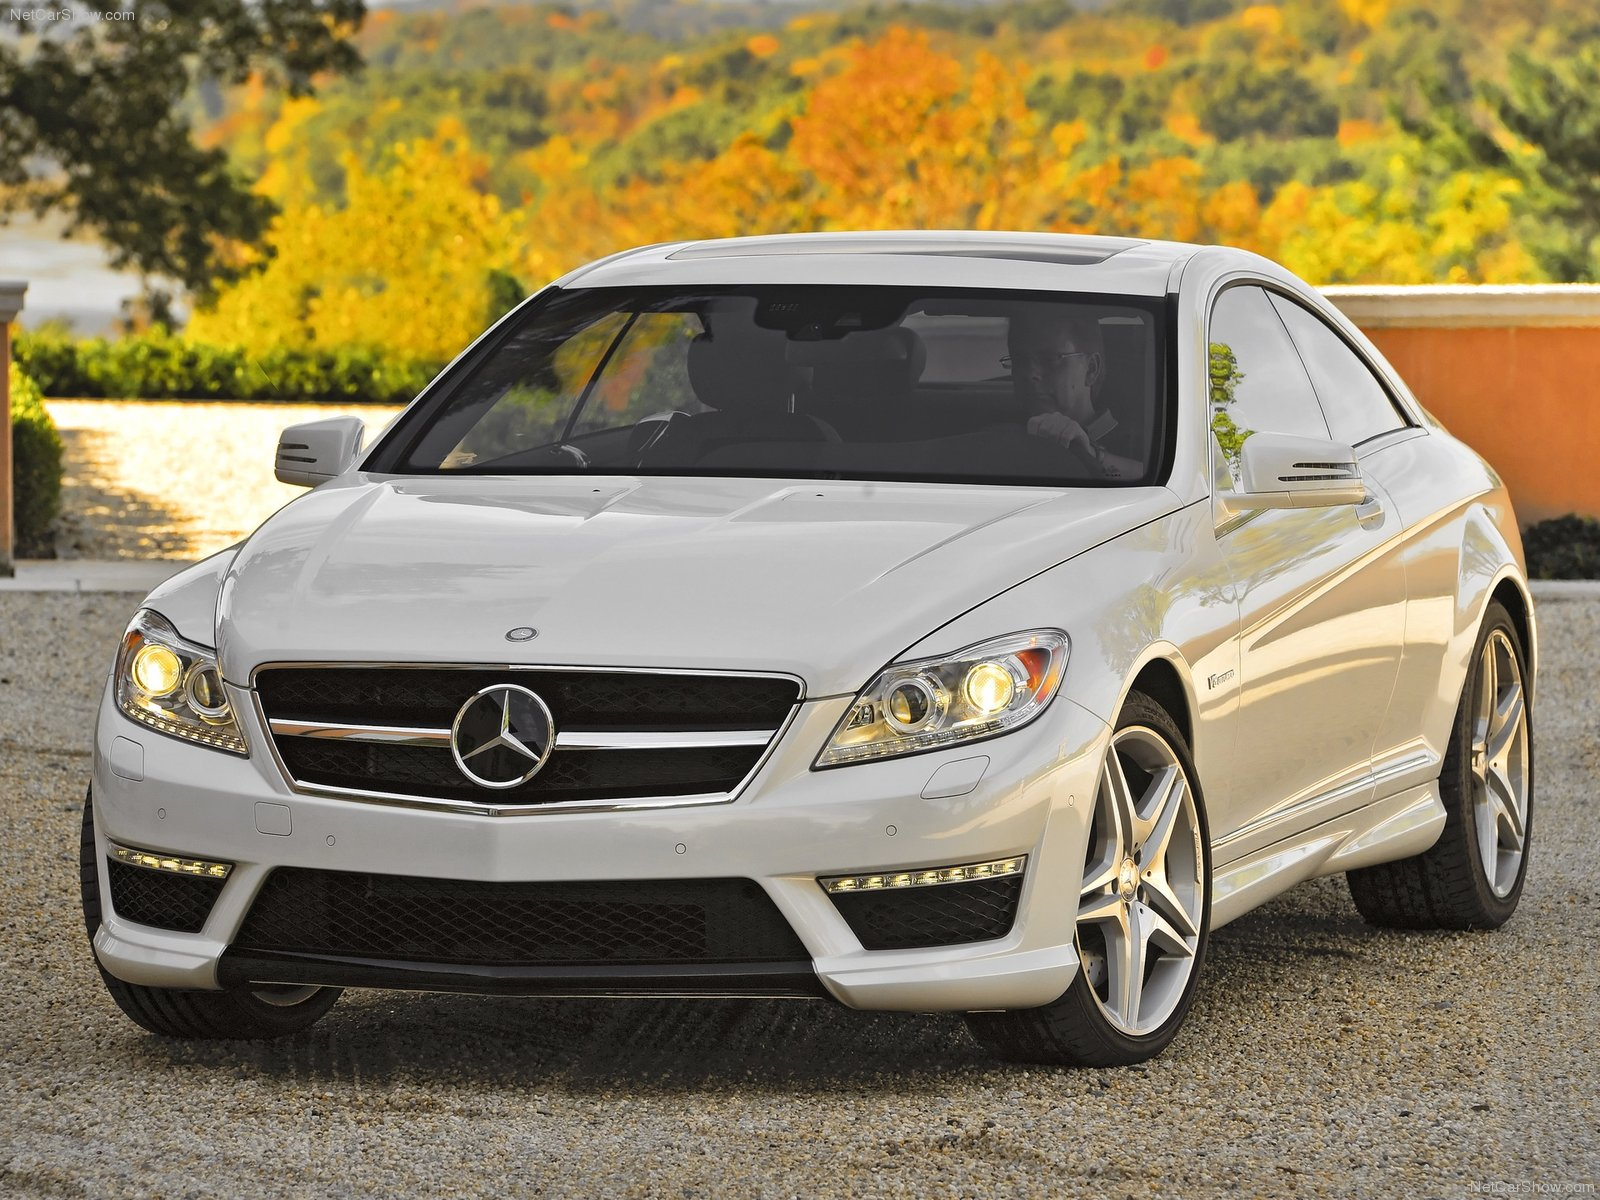 Mercedes benz cl63 amg picture 77477 mercedes benz for Mercedes benz cl63